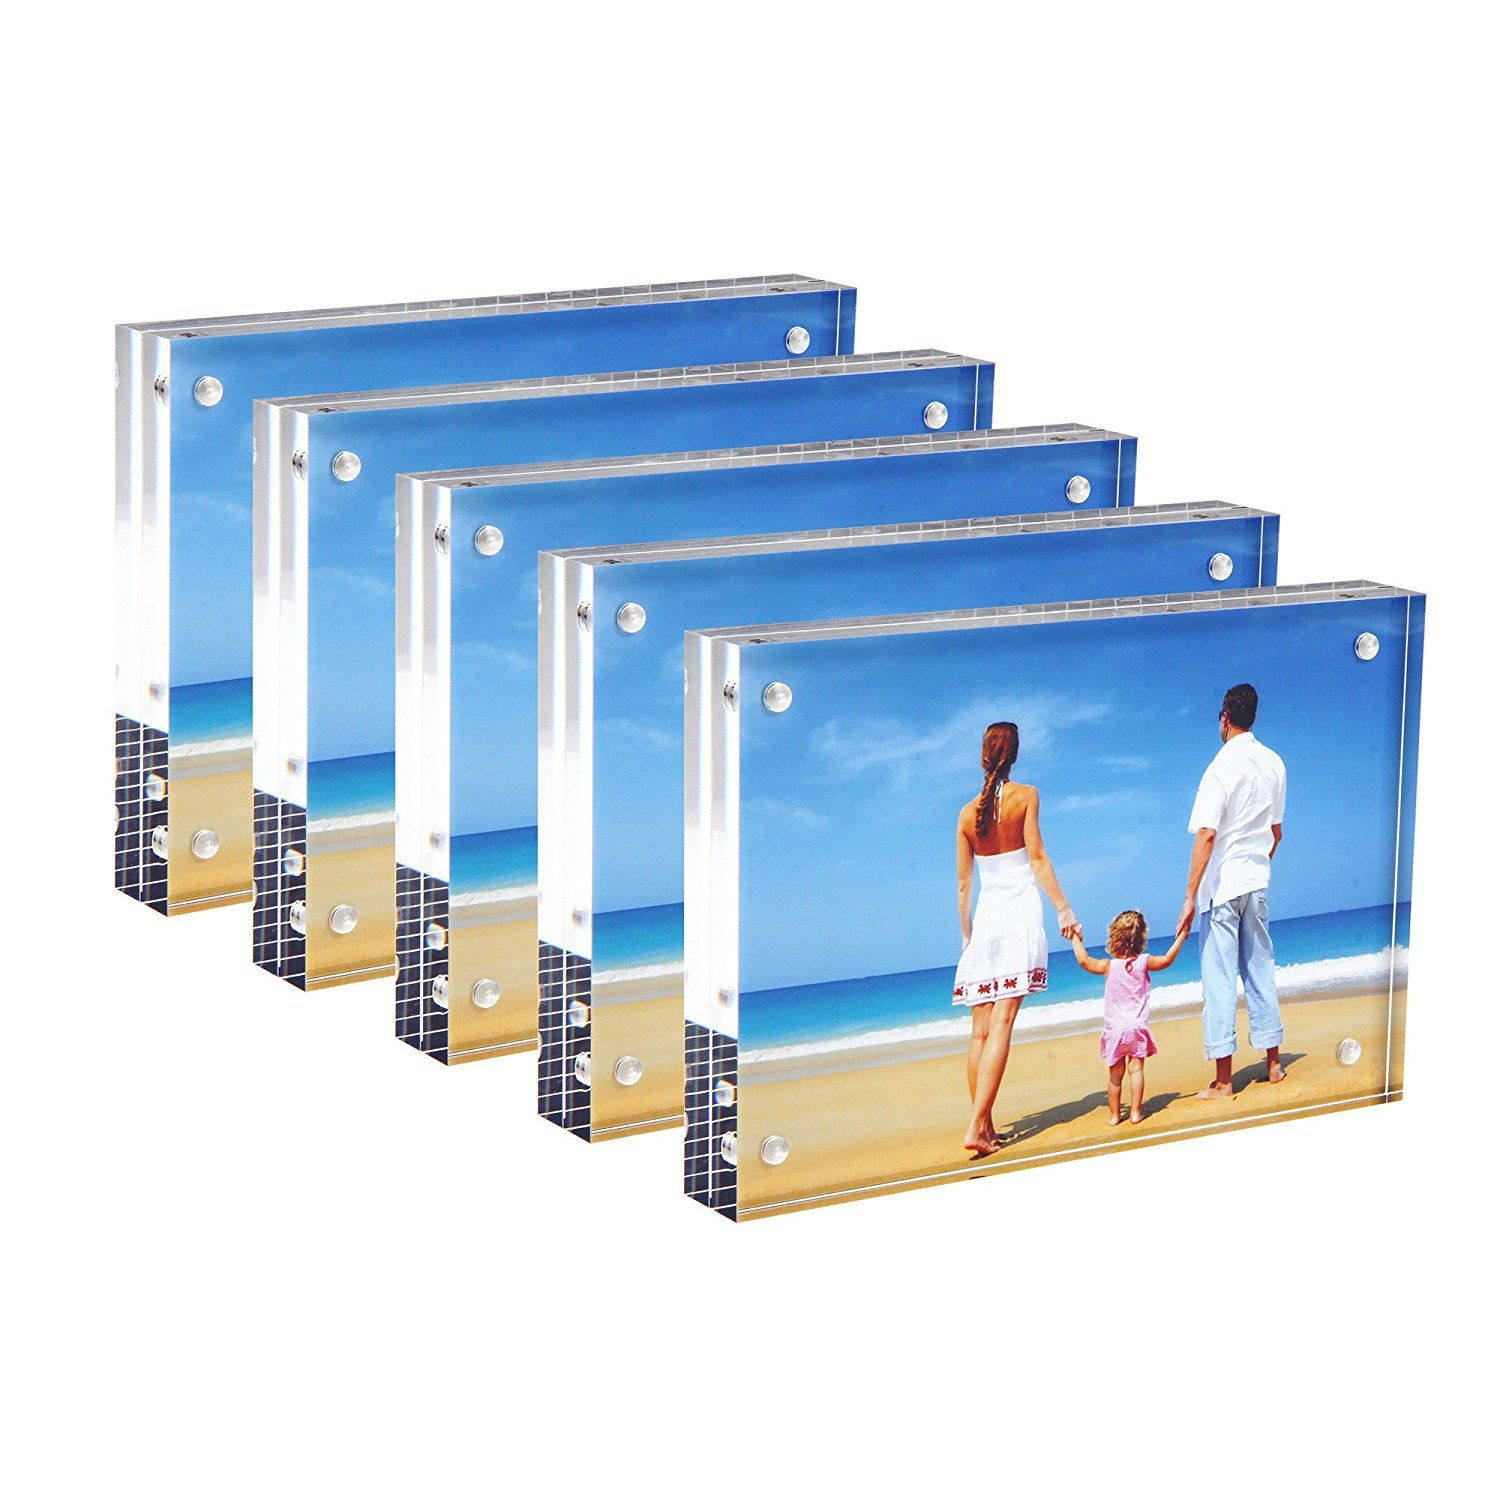 Amazon Com Bulk Acrylic Picture Frames 4x6 Clear Double Sided Block Set With Gift Box Package Desktop Frameless Acryli Magnetic Photo Frames Acrylic Picture Frames Acrylic Photo Frames